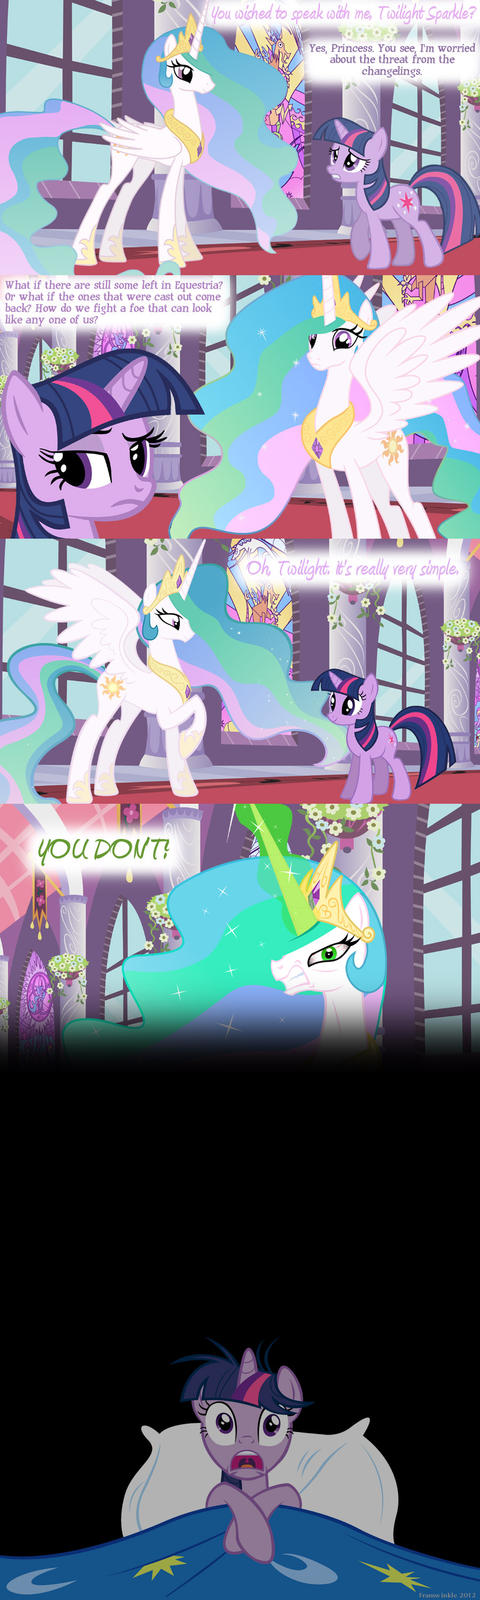 The Changeling Threat